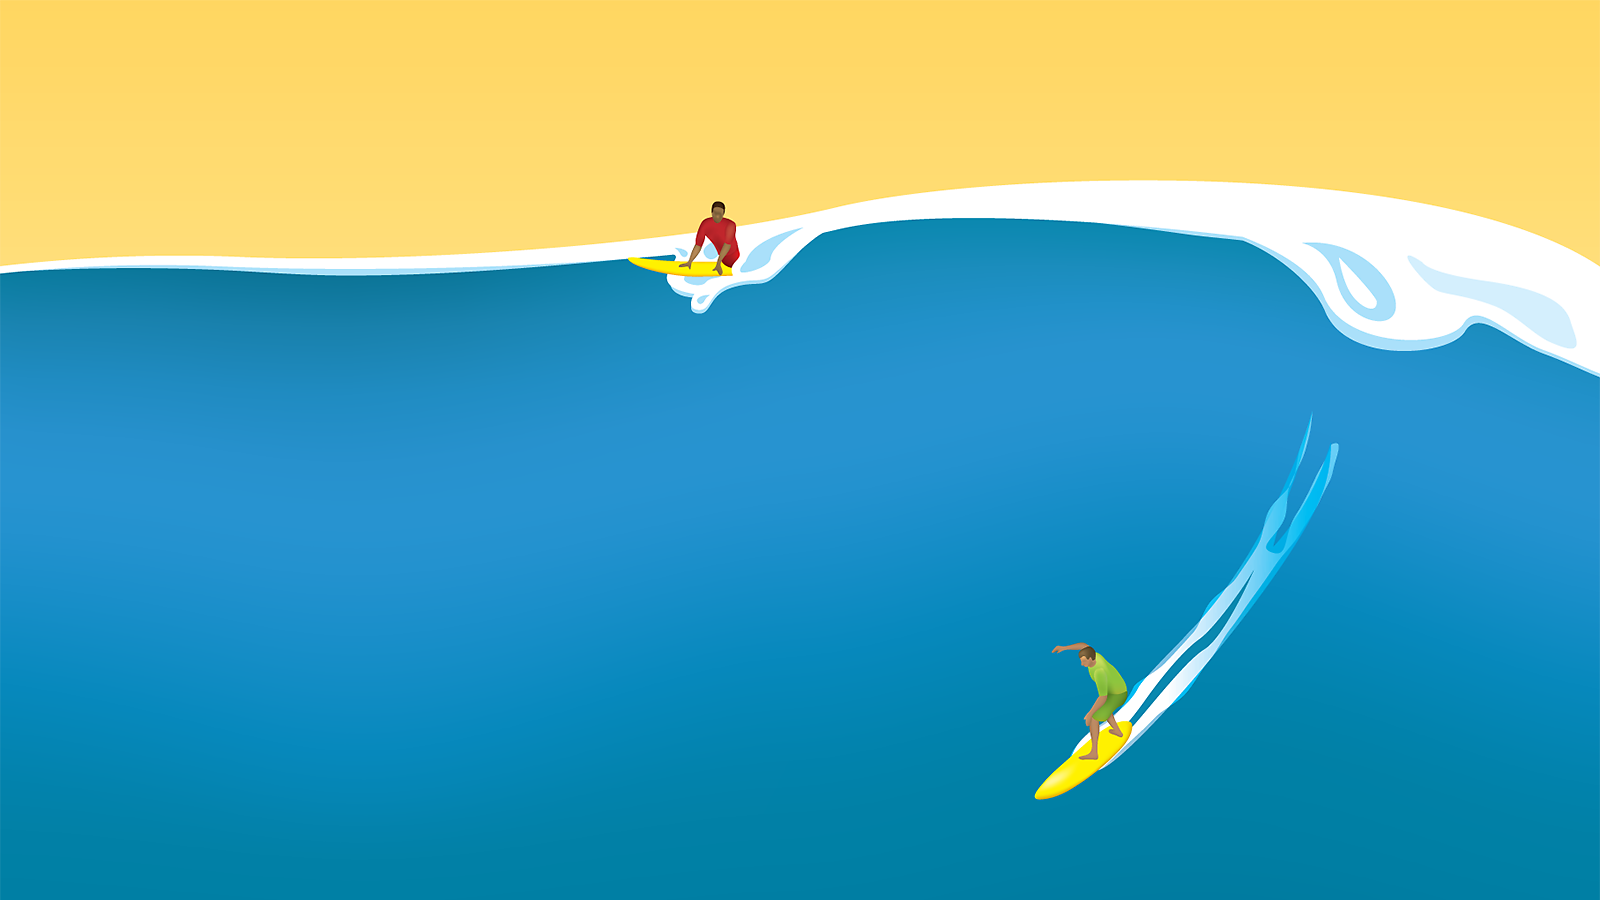 Illustration of surfers on a large wave